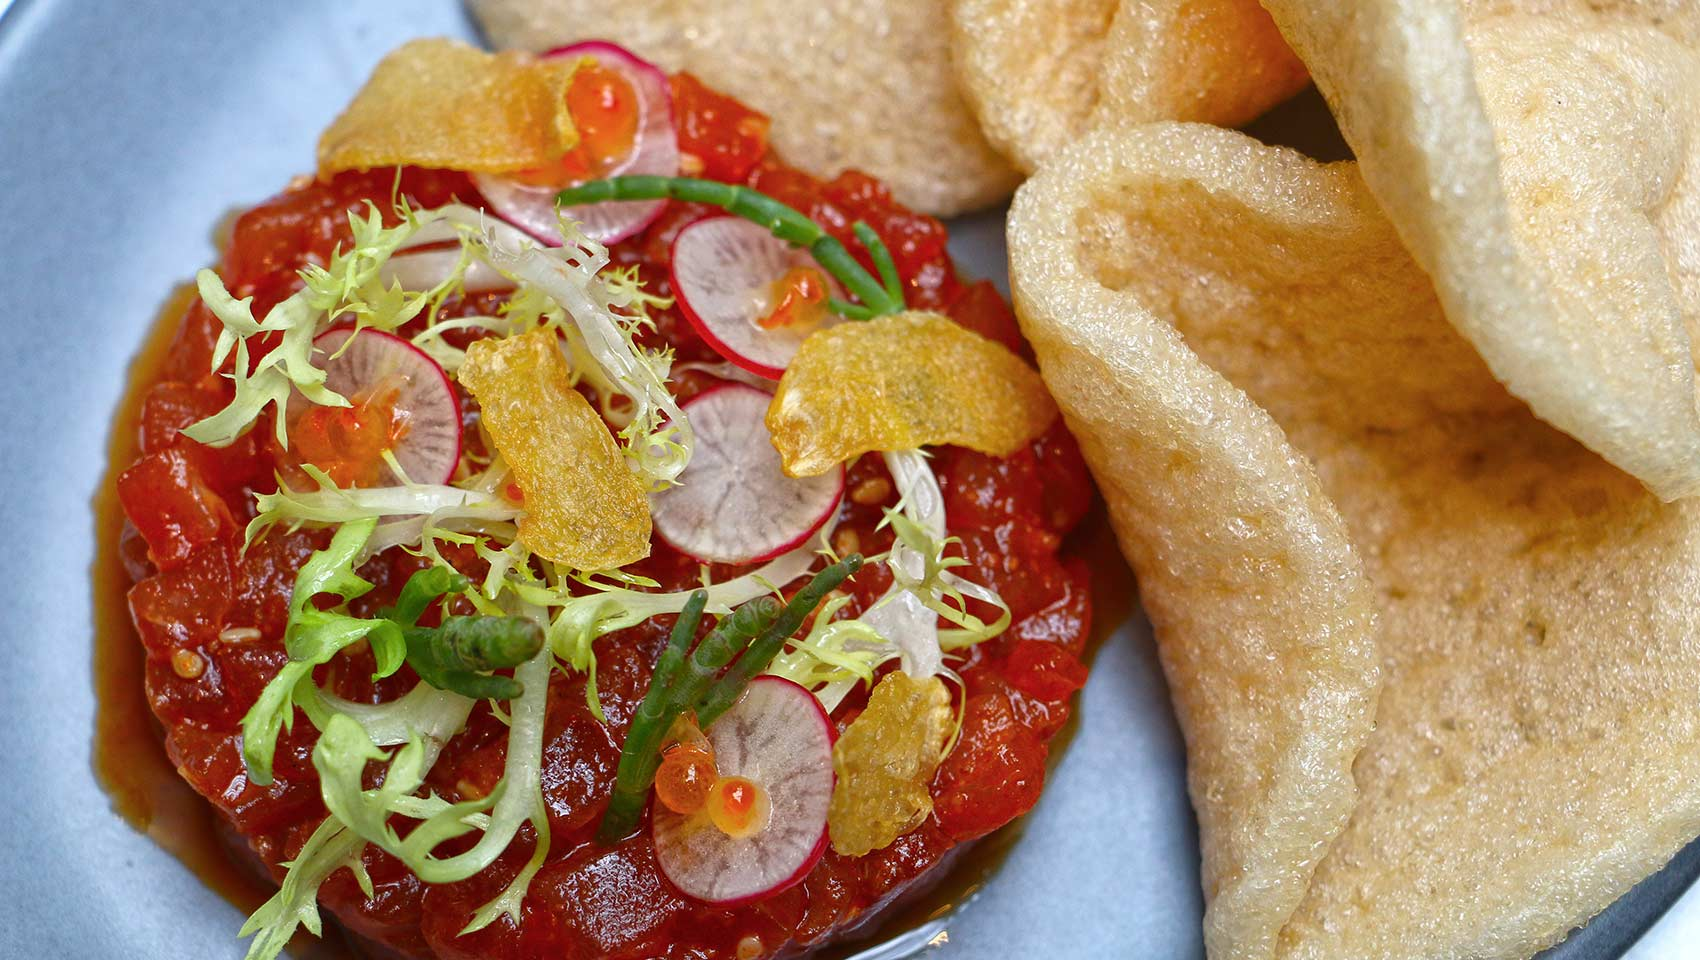 Dirty Habit tuna tartare dish